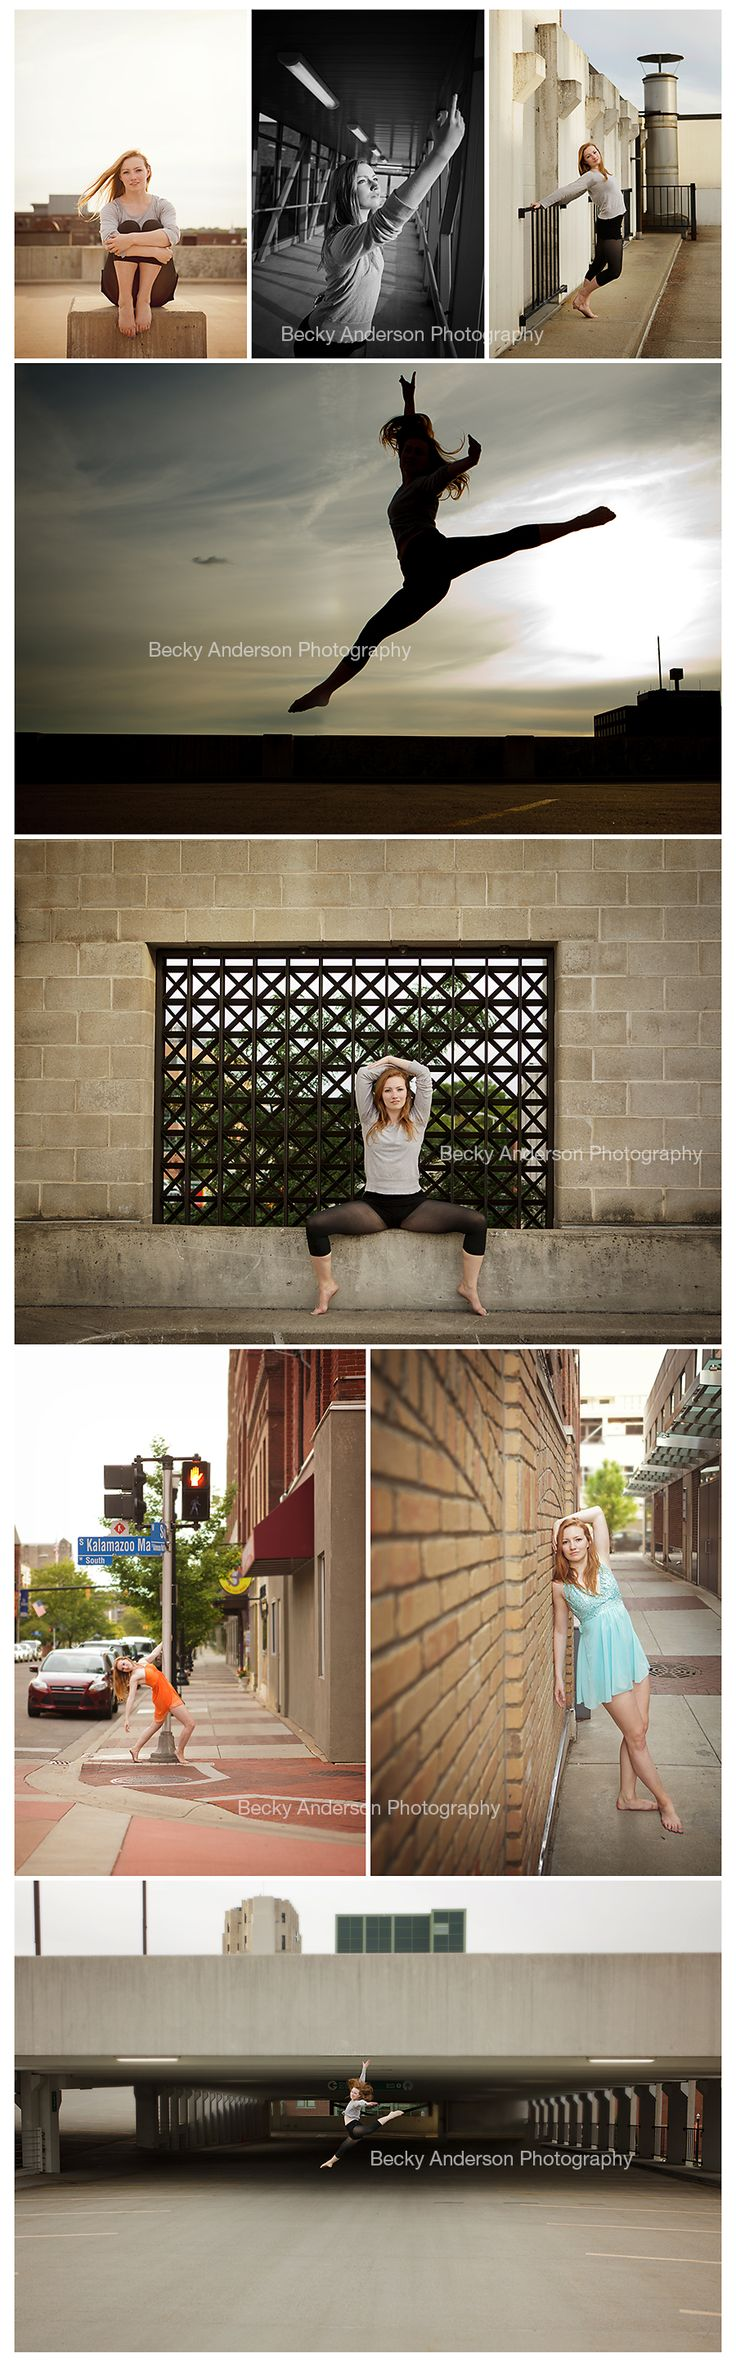 Beautiful urban dancer images in downtown Kalamazoo #baseniors